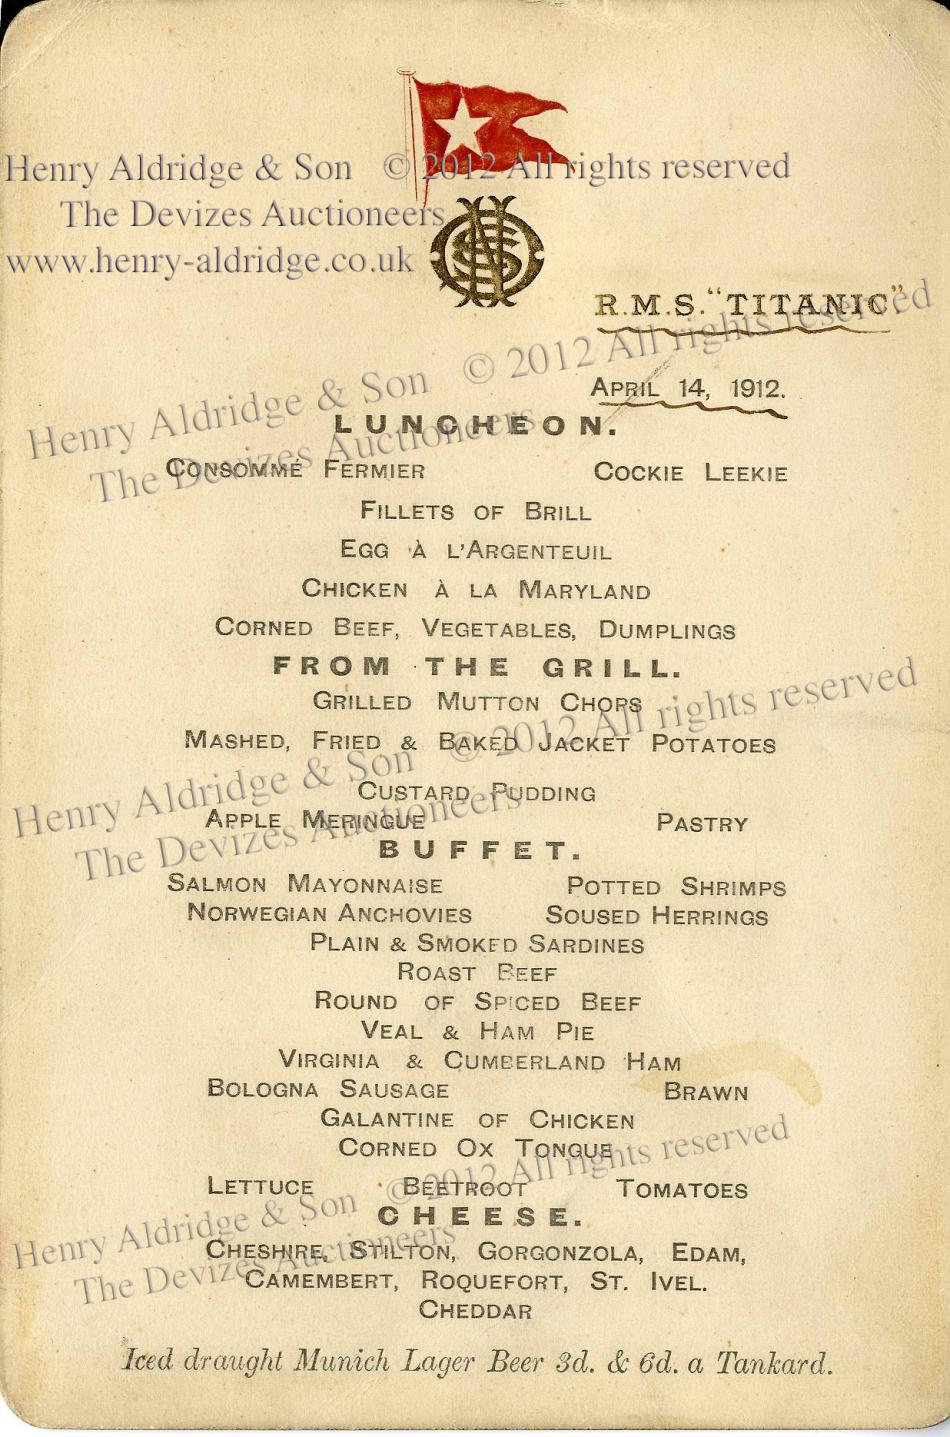 Menu from Titanic's Last Lunch to be Sold on her 100th Anniversary